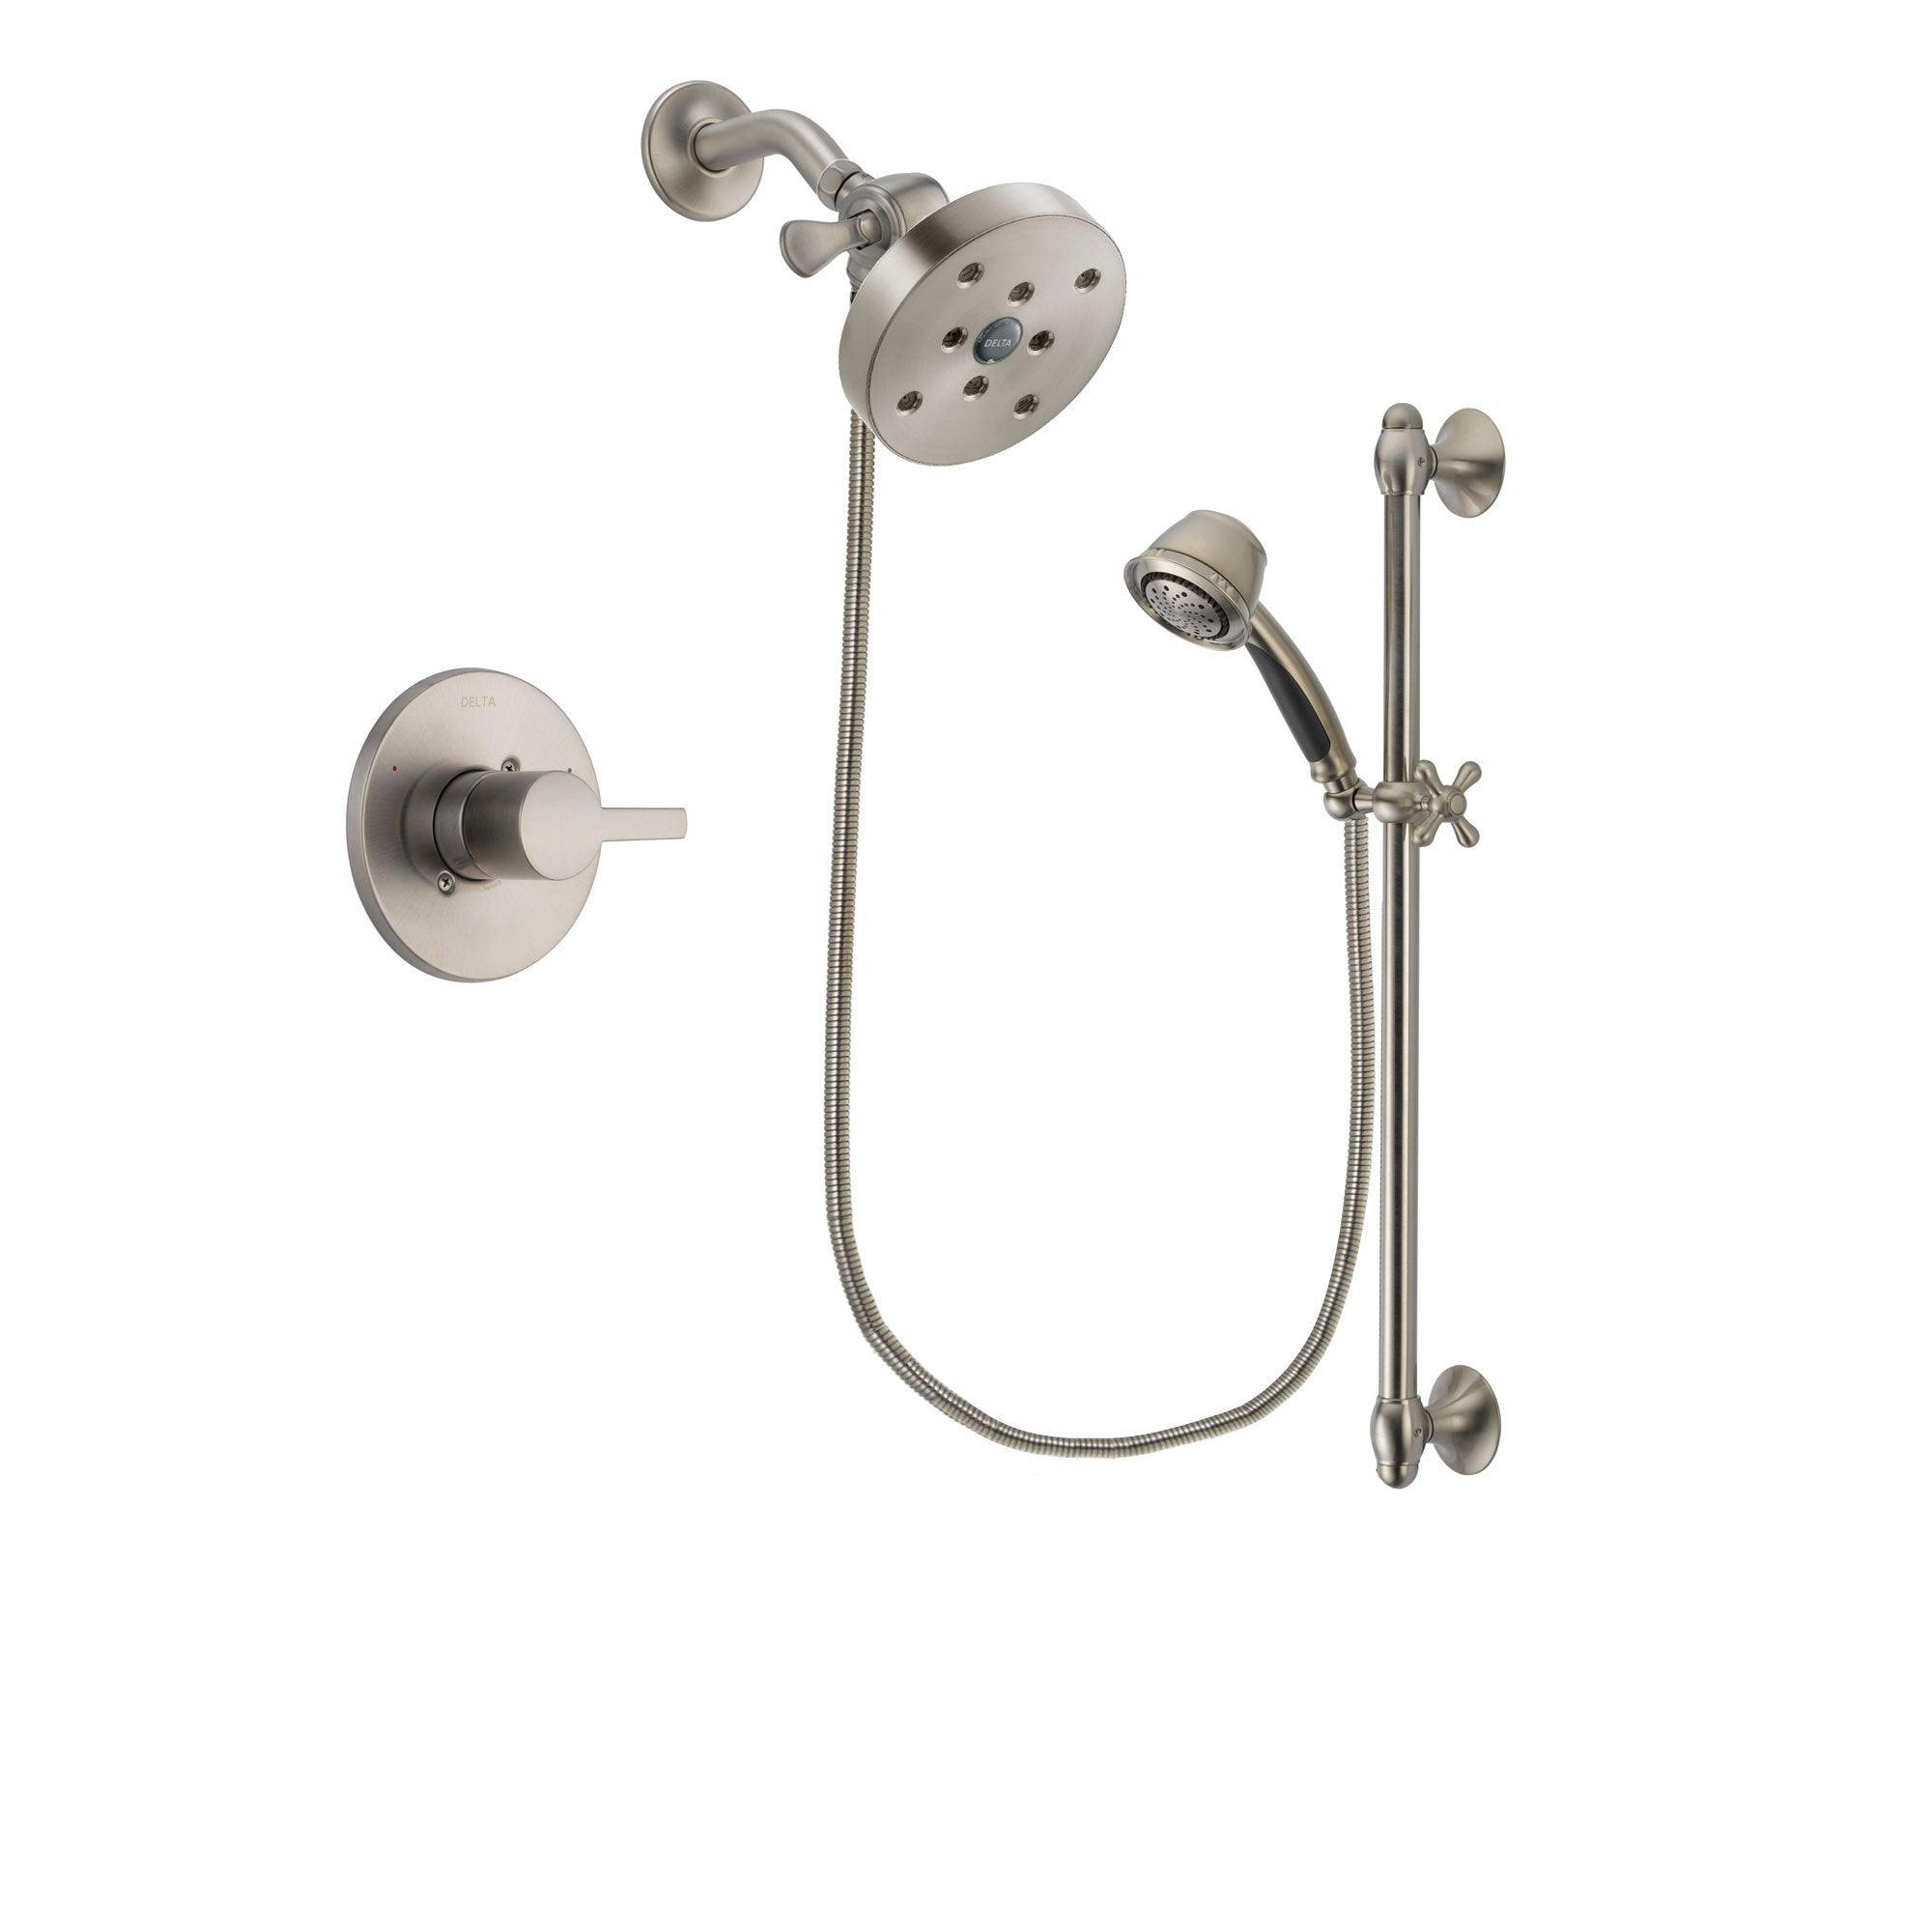 Delta Compel Stainless Steel Finish Shower Faucet System w/ Hand Spray DSP1358V